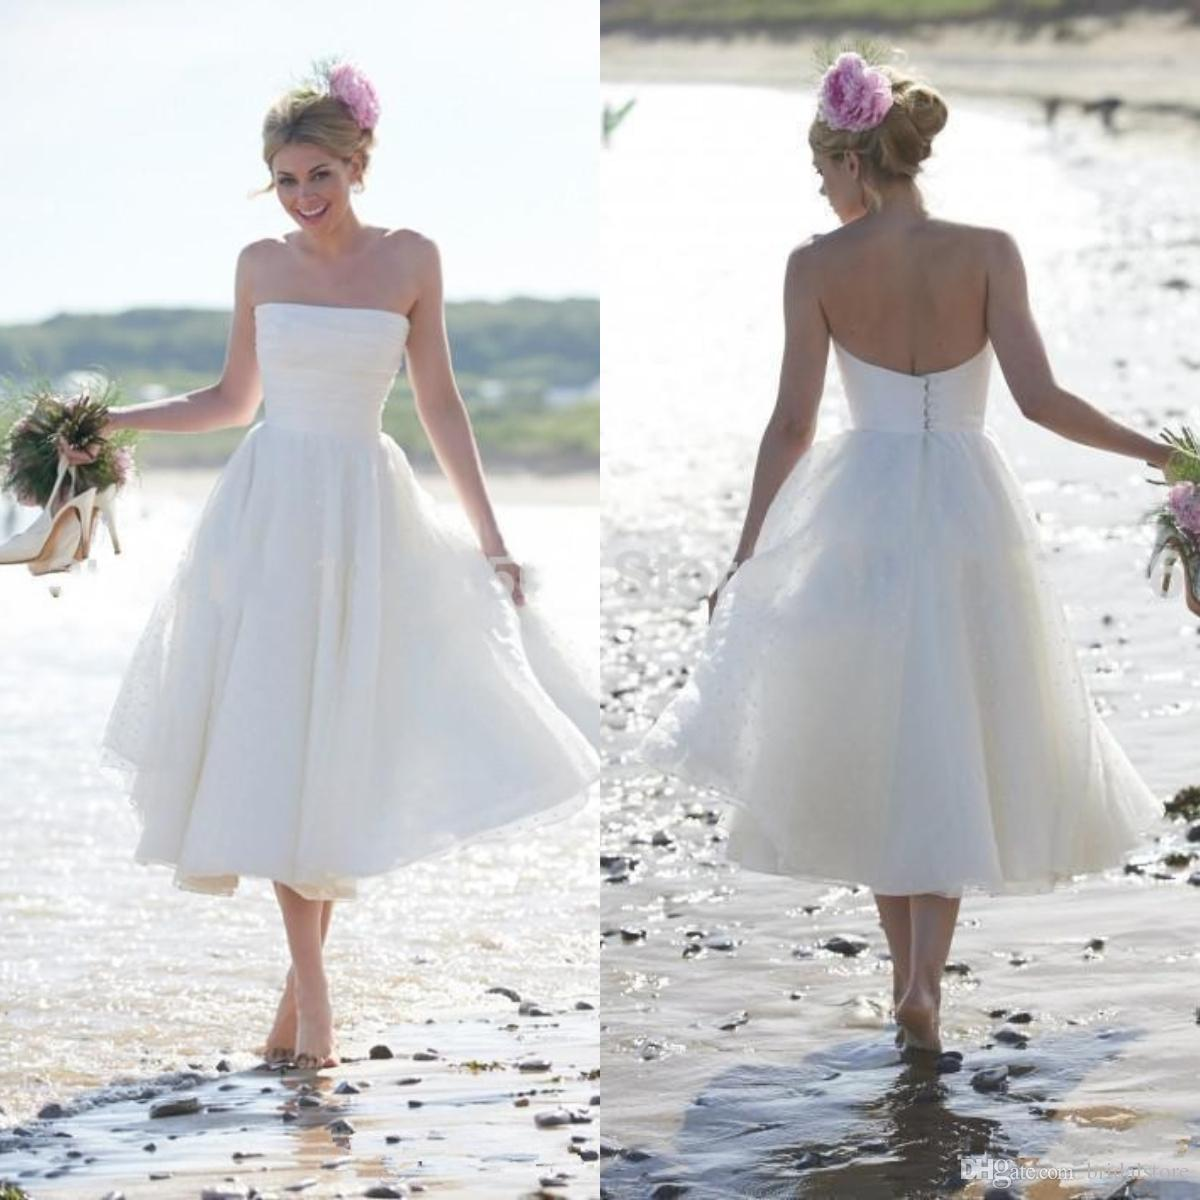 Discount White Cheap Best Short Beach Wedding Dresses A Line Plus Size  Strapless Tea Length Bridal Gowns Simple Boho Summer Holiday Wedding Guest  Lace ...